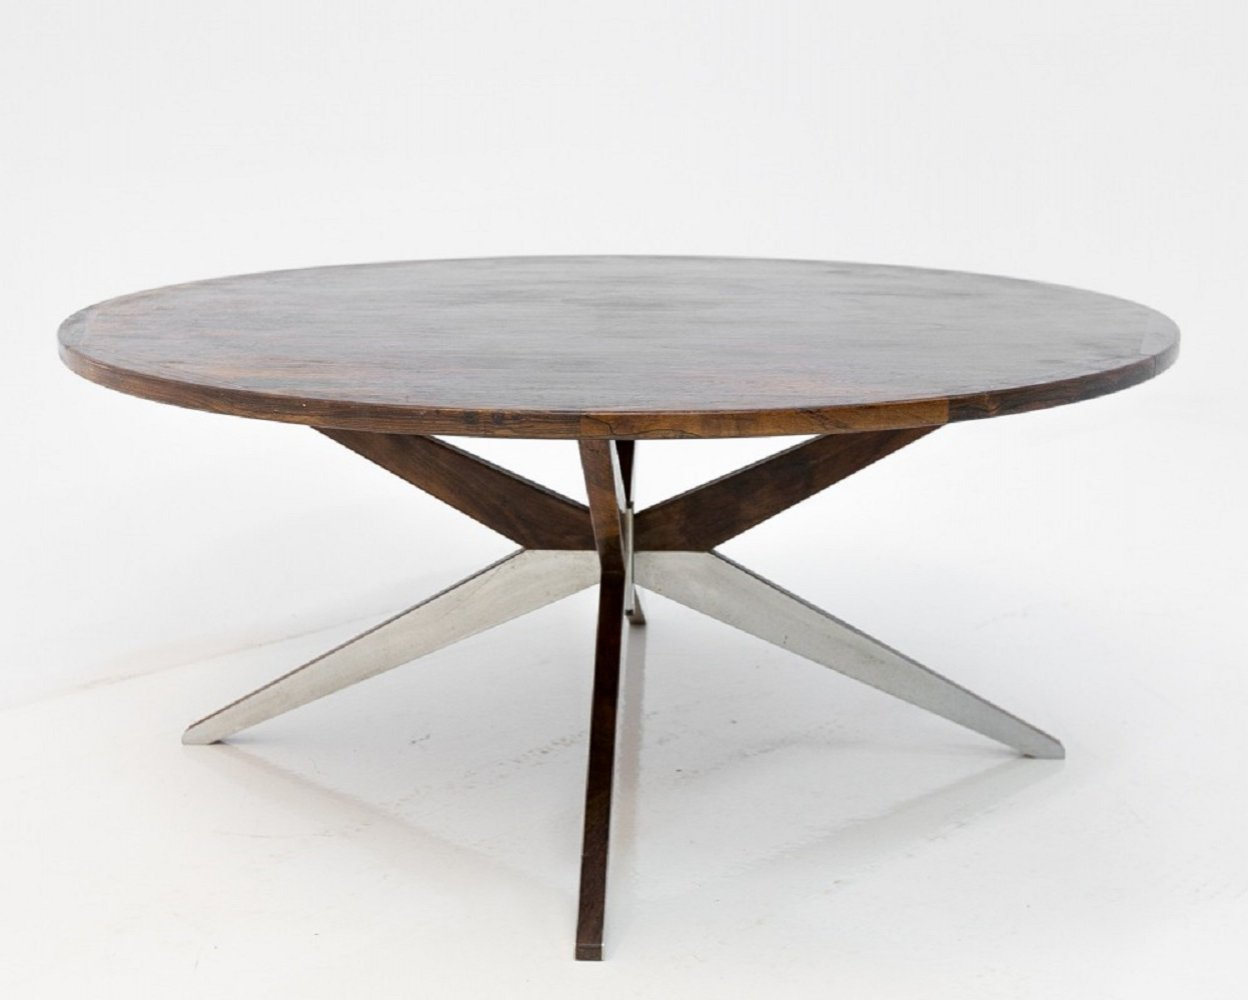 Star leg rosewood coffee table, 1960s